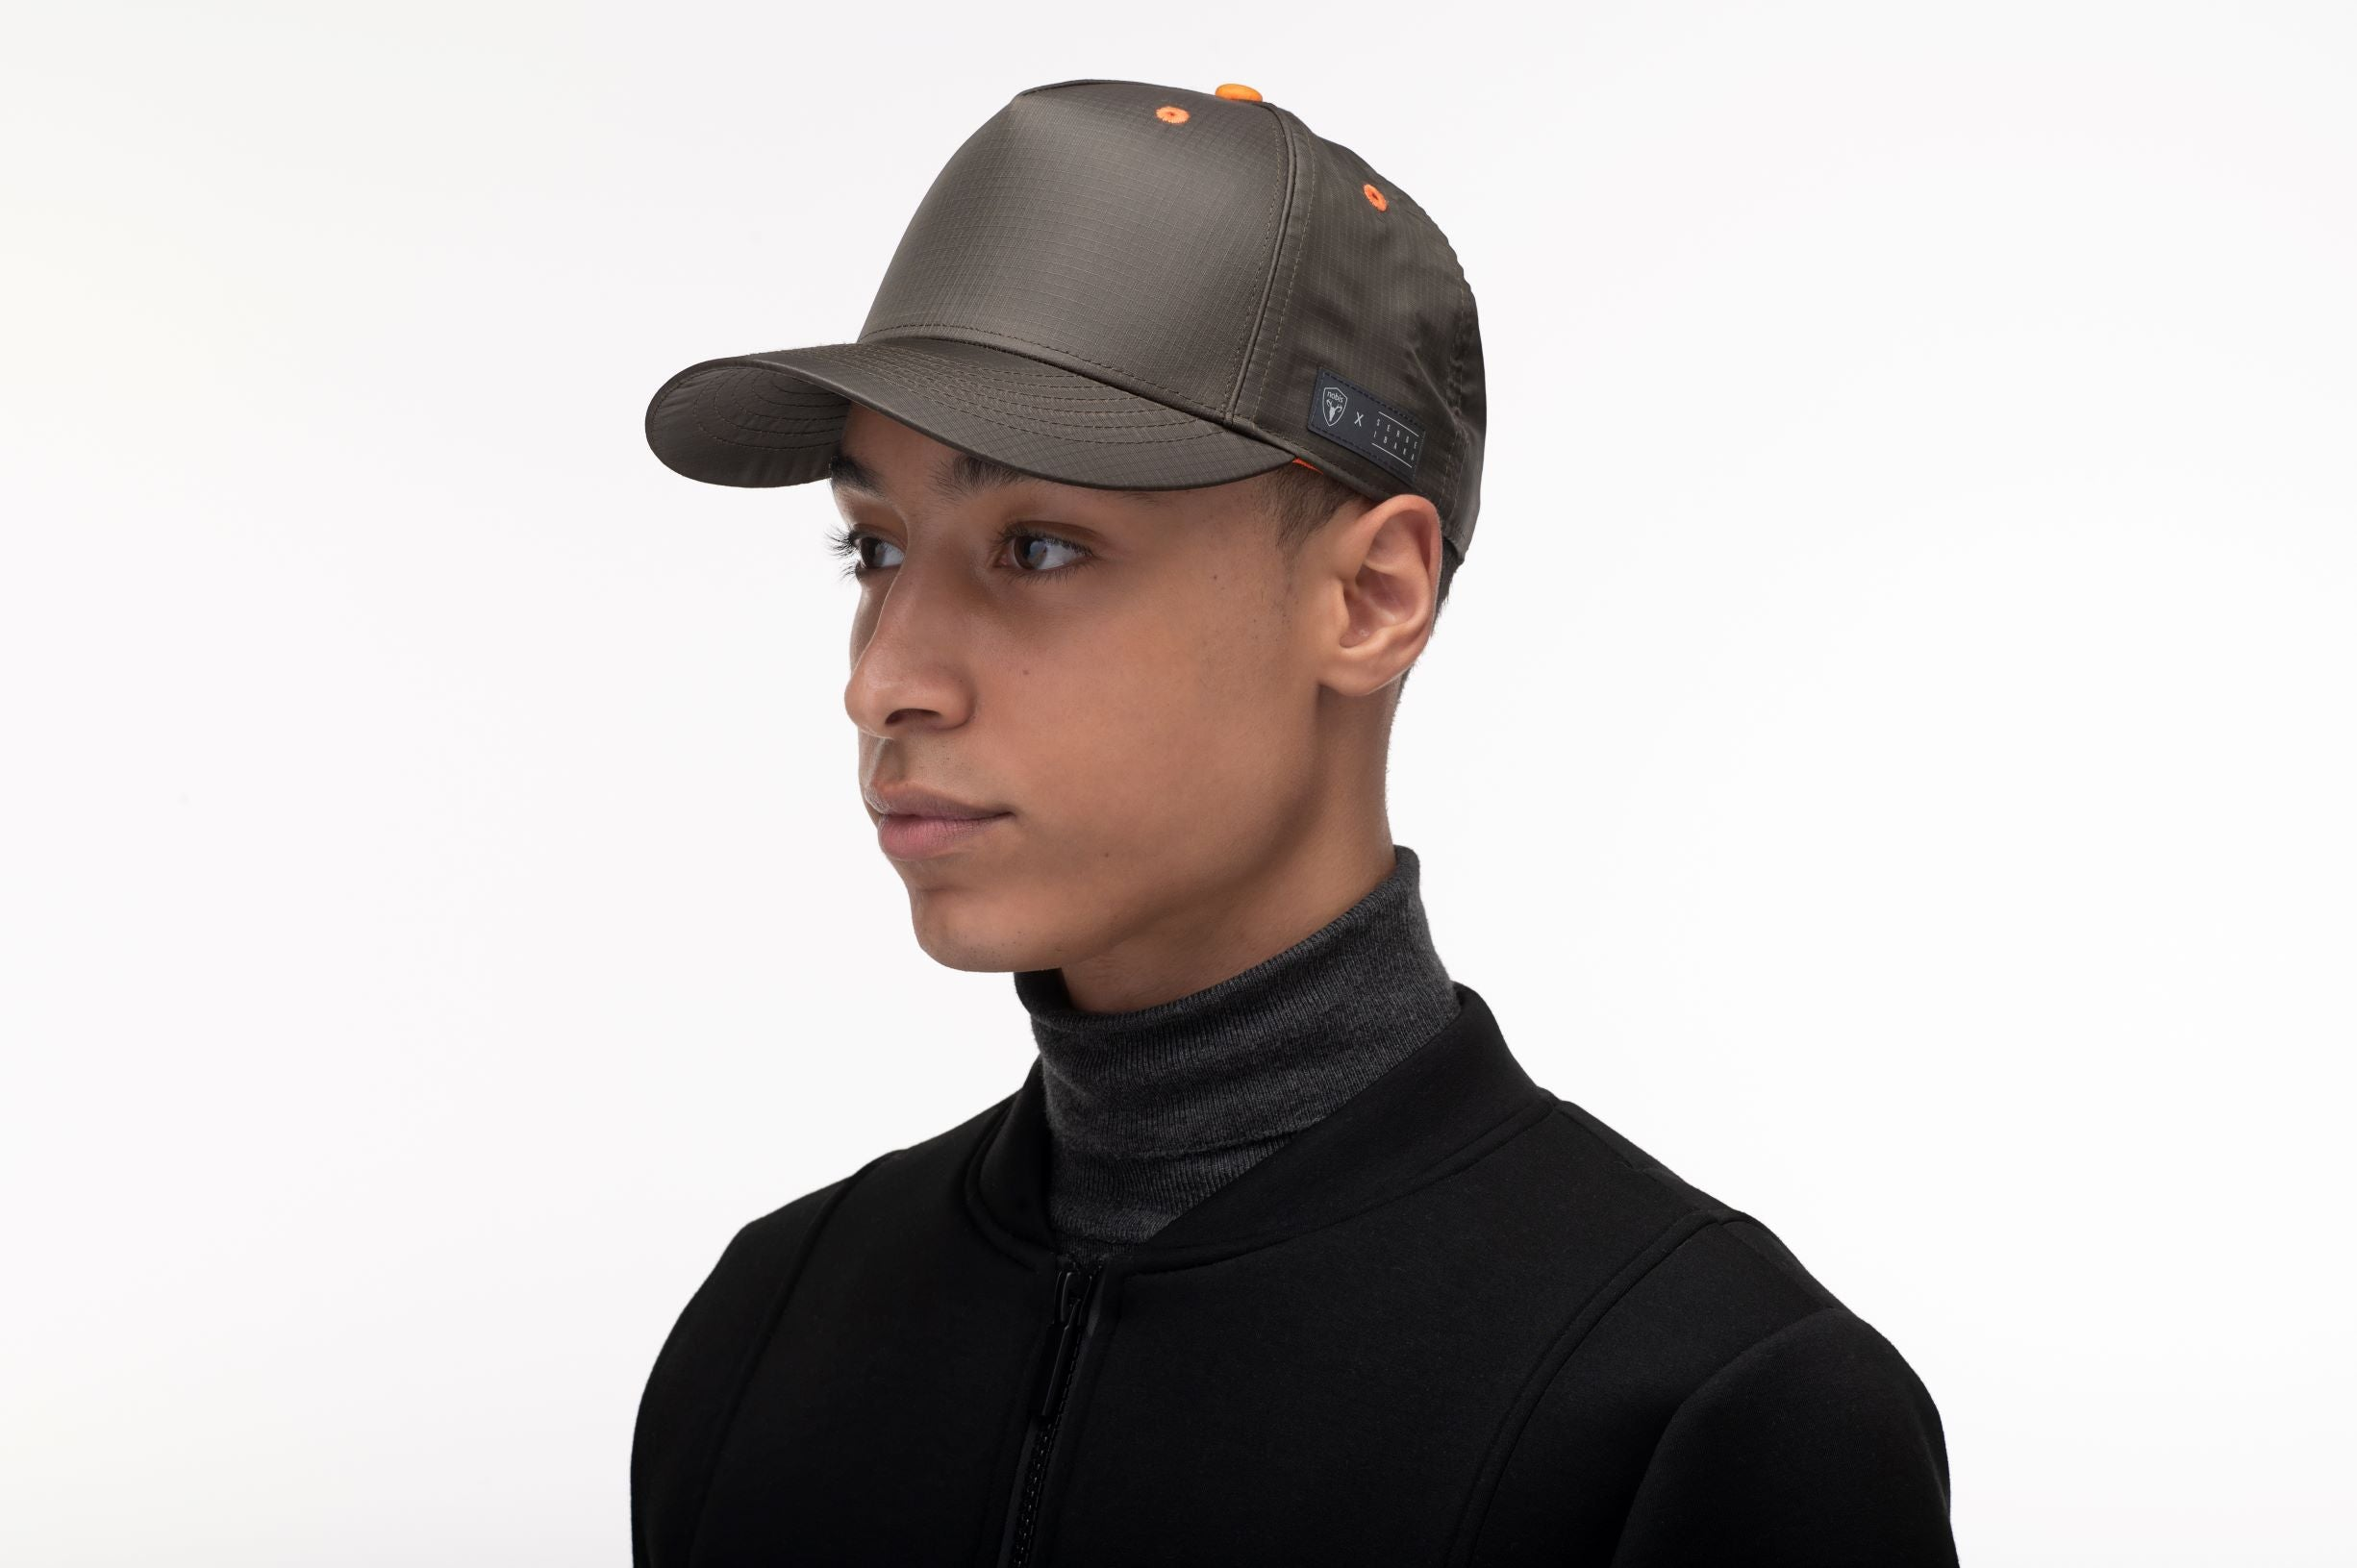 Unisex 5 panel baseball cap with adjustable back and contrast colour detailing in Dusty Olive | color